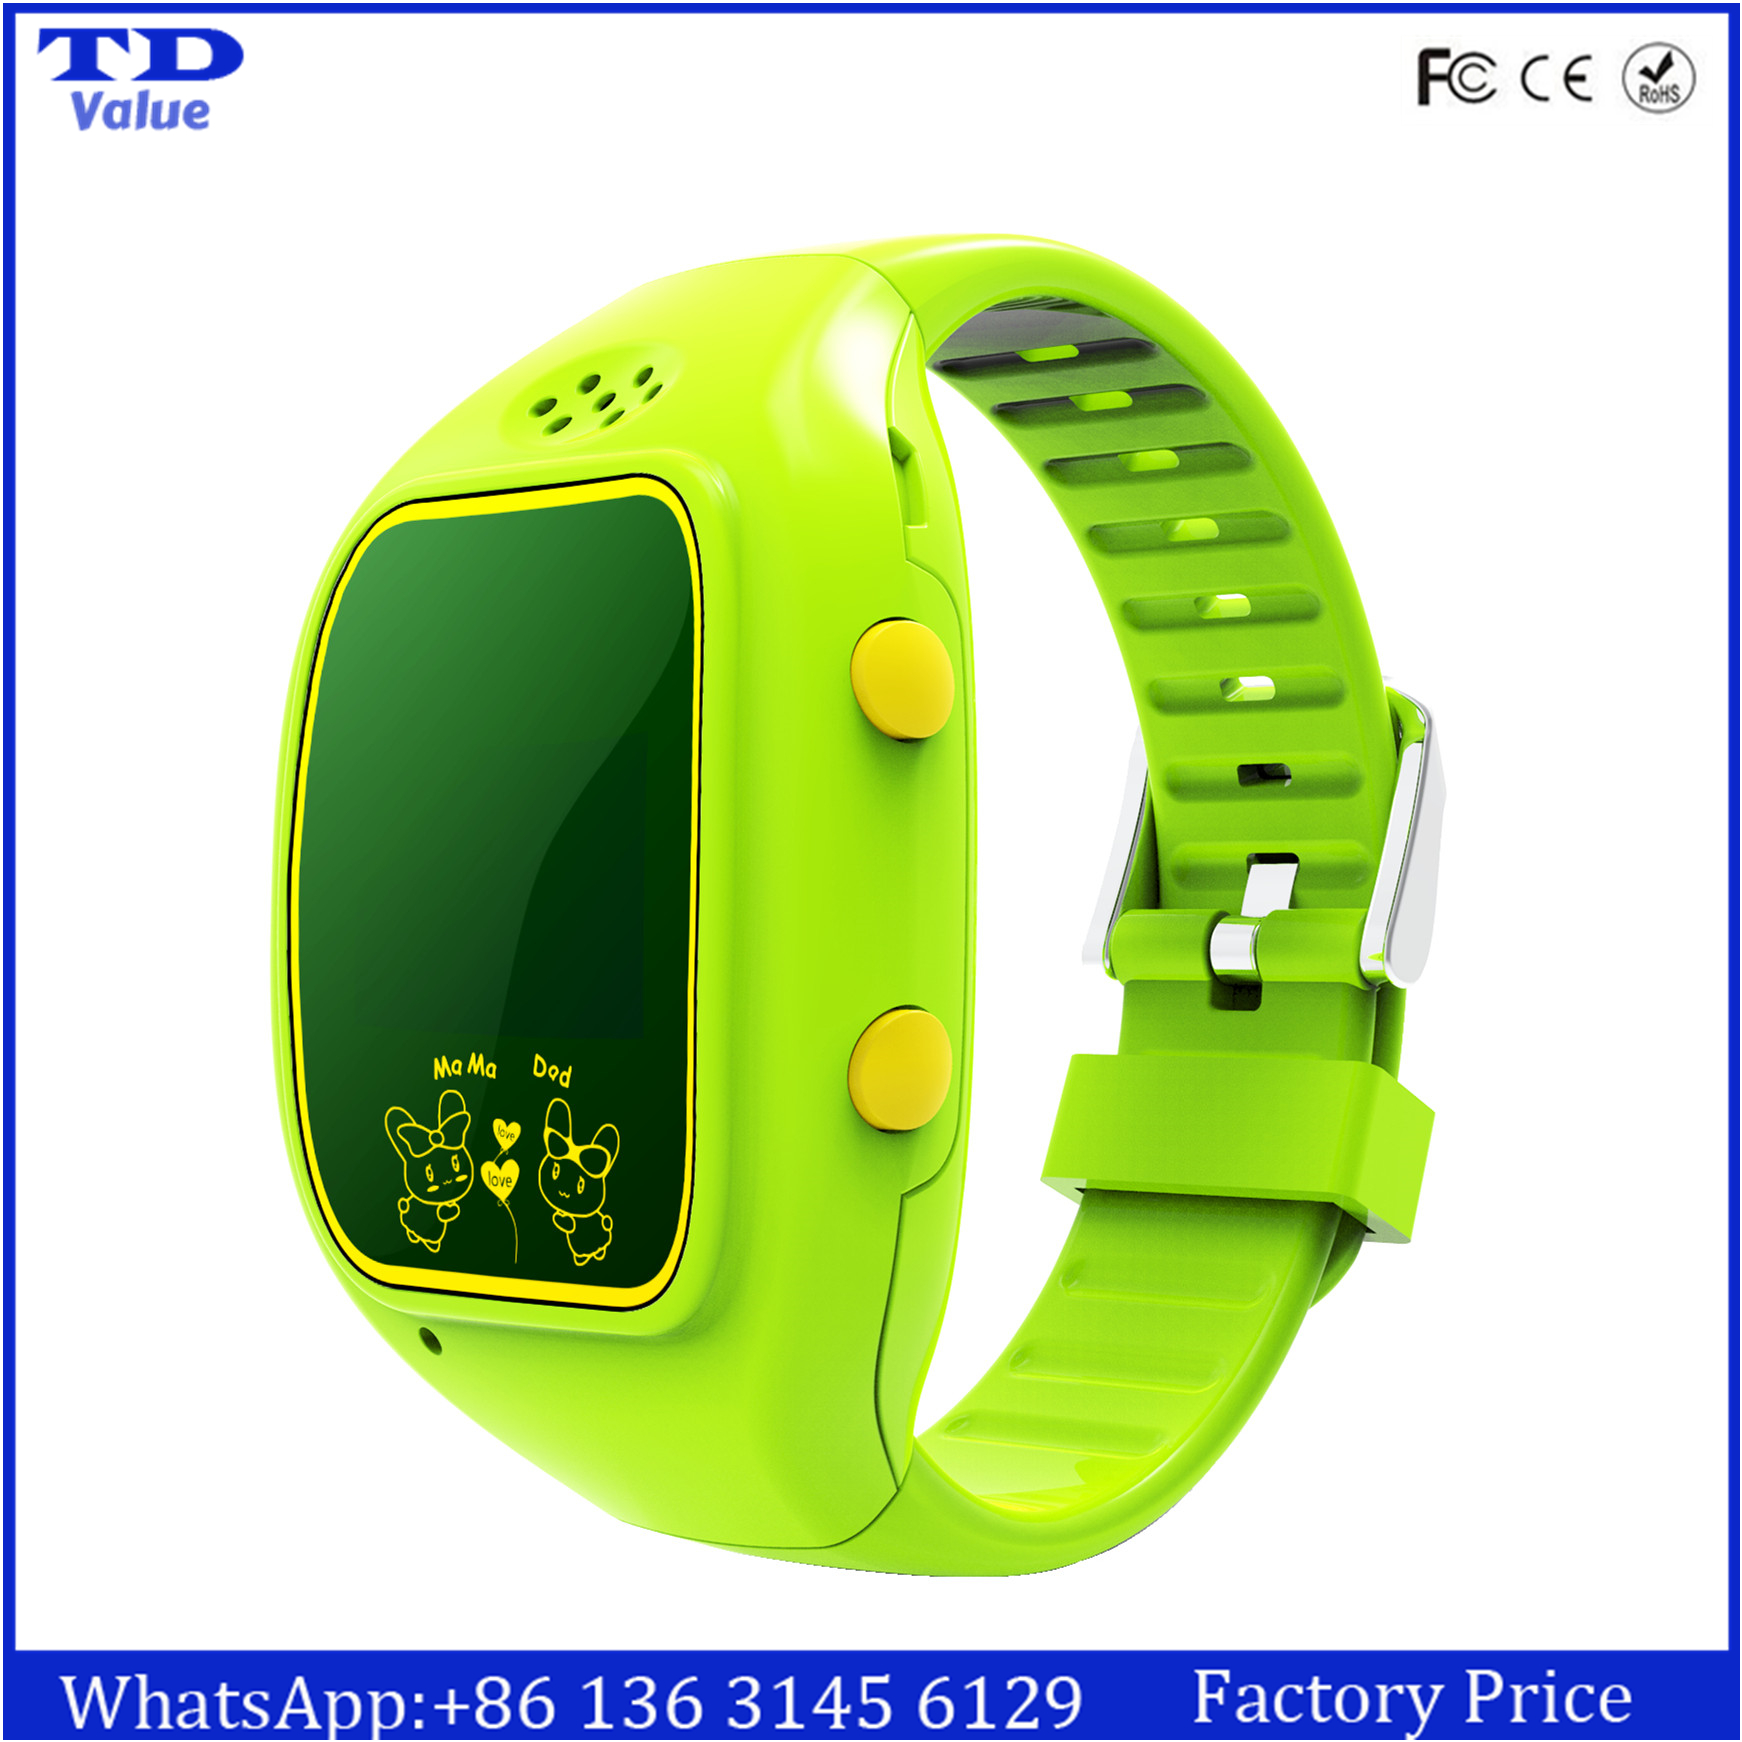 mobile watch phone price in pakistan with A Discount